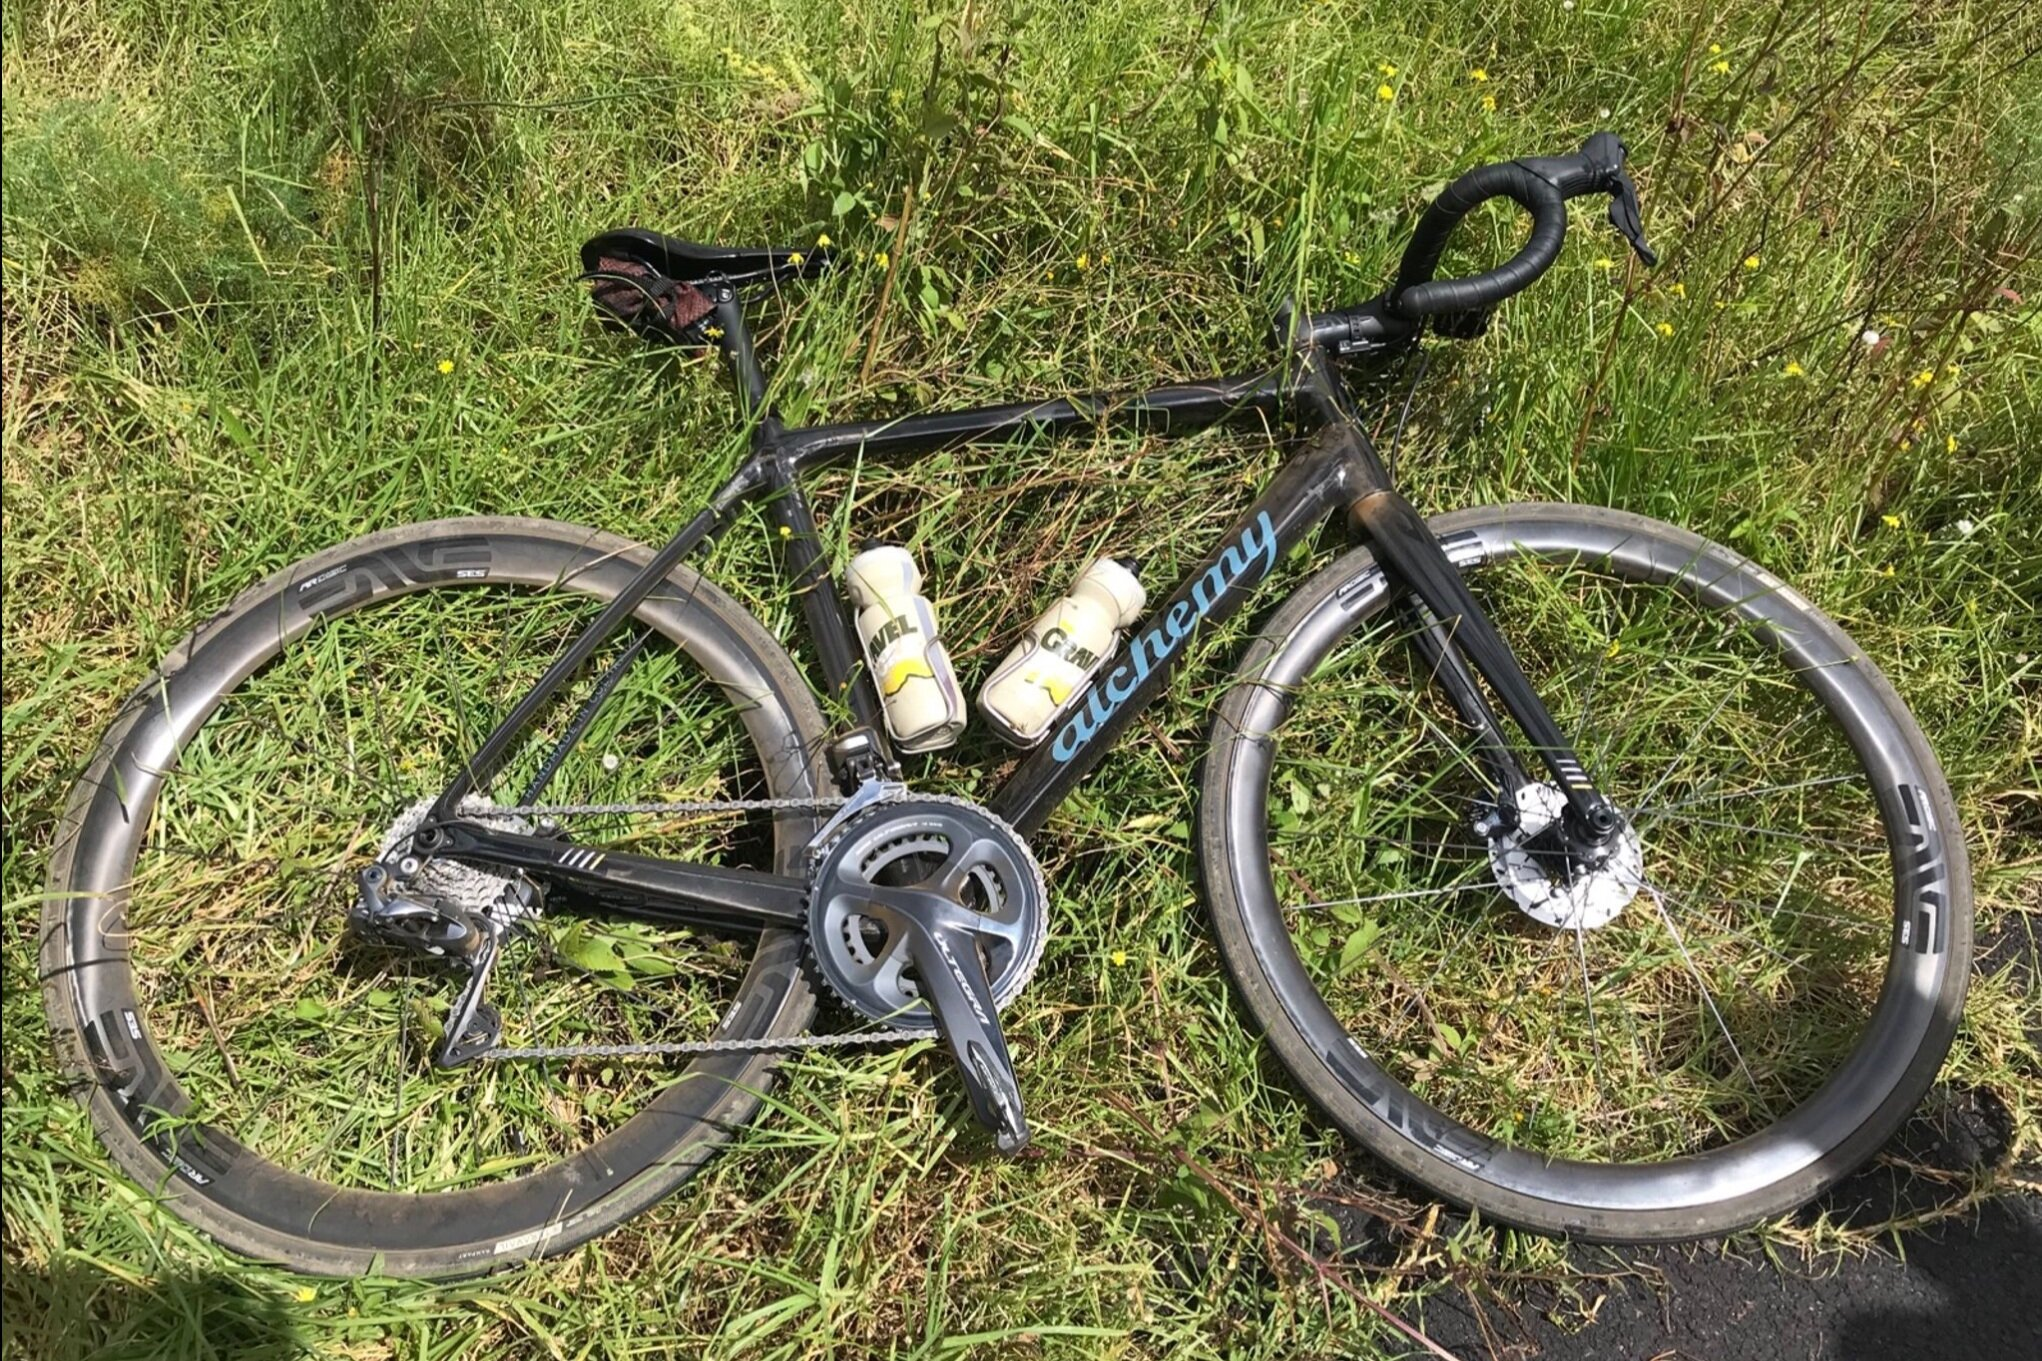 Neil Shirley rode this Alchemy gravel bike with the 3.4 AR wheels. Nice to see our bottles made it there too. PC: Neil Shirley